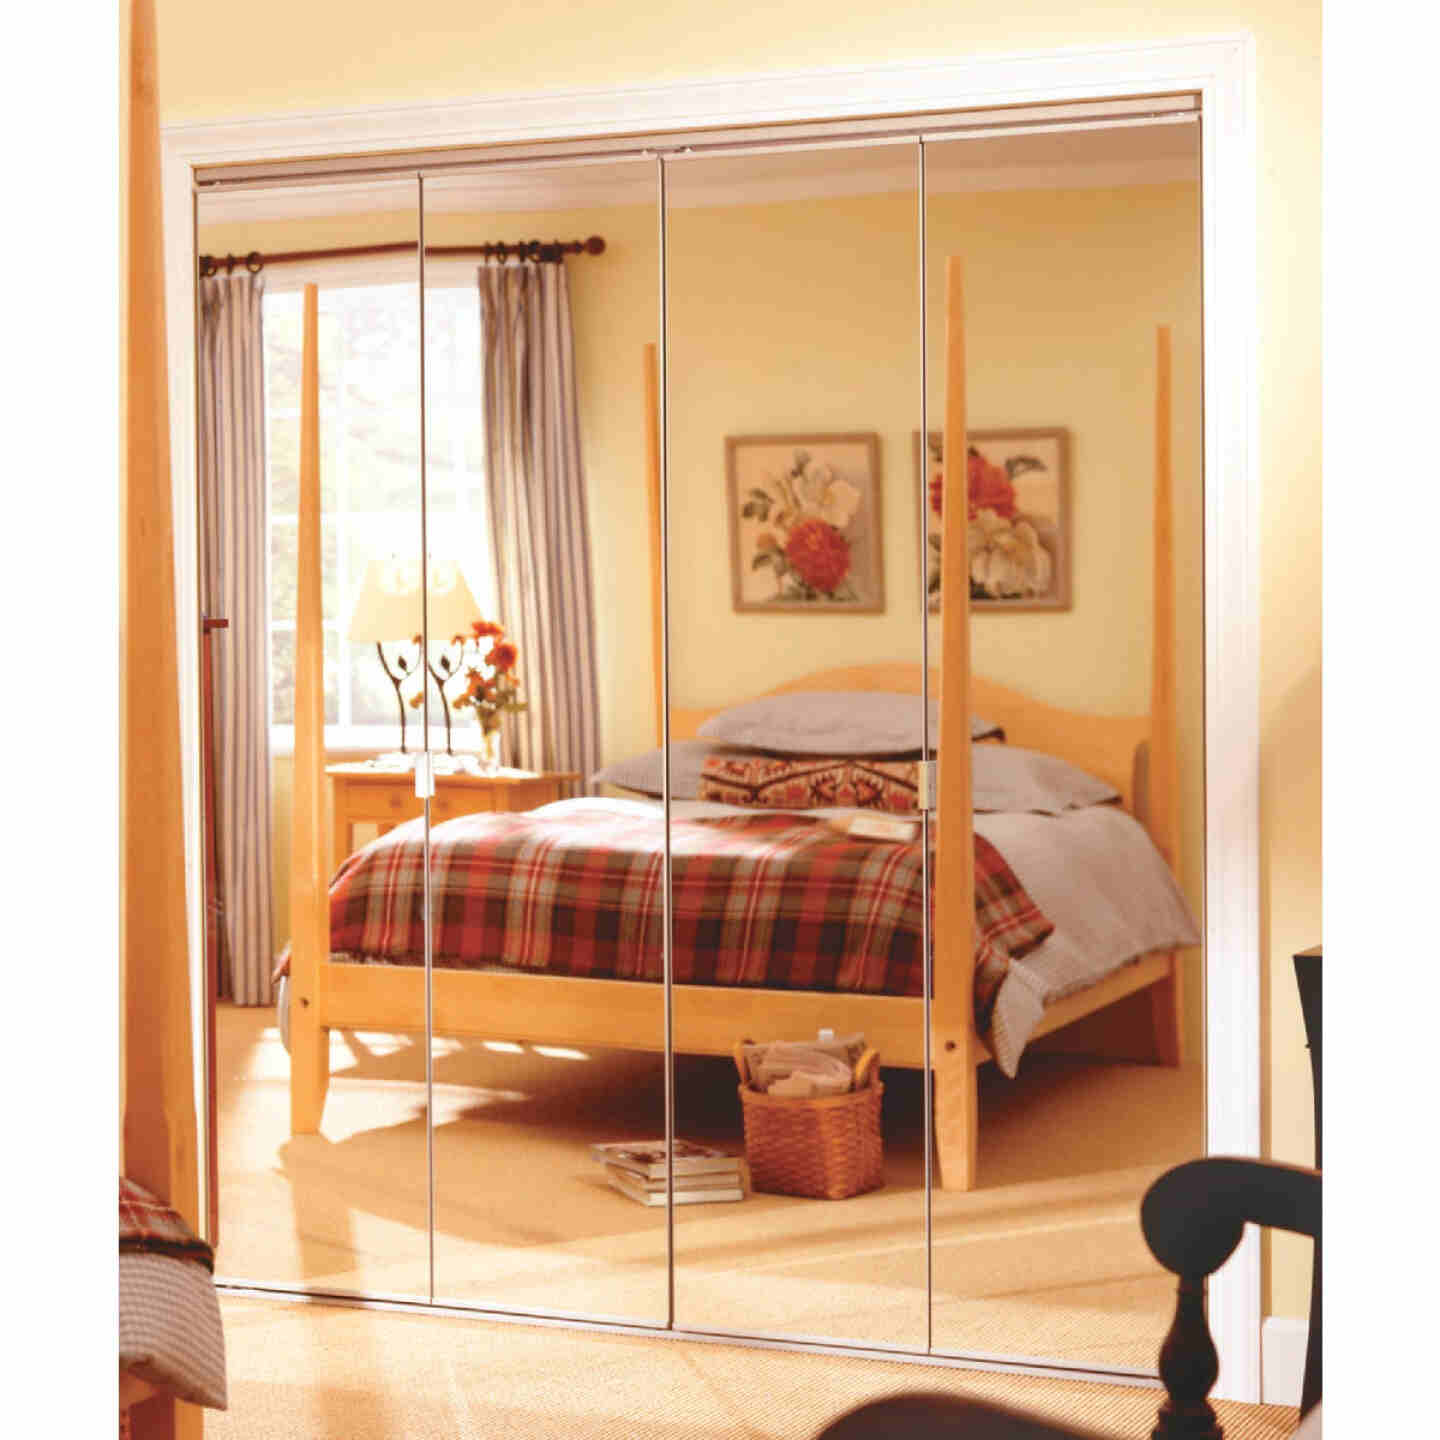 Erias Series 4900 30 In. W. x 80-1/2 In. H. Steel Frameless Mirrored White Bifold Door Image 1